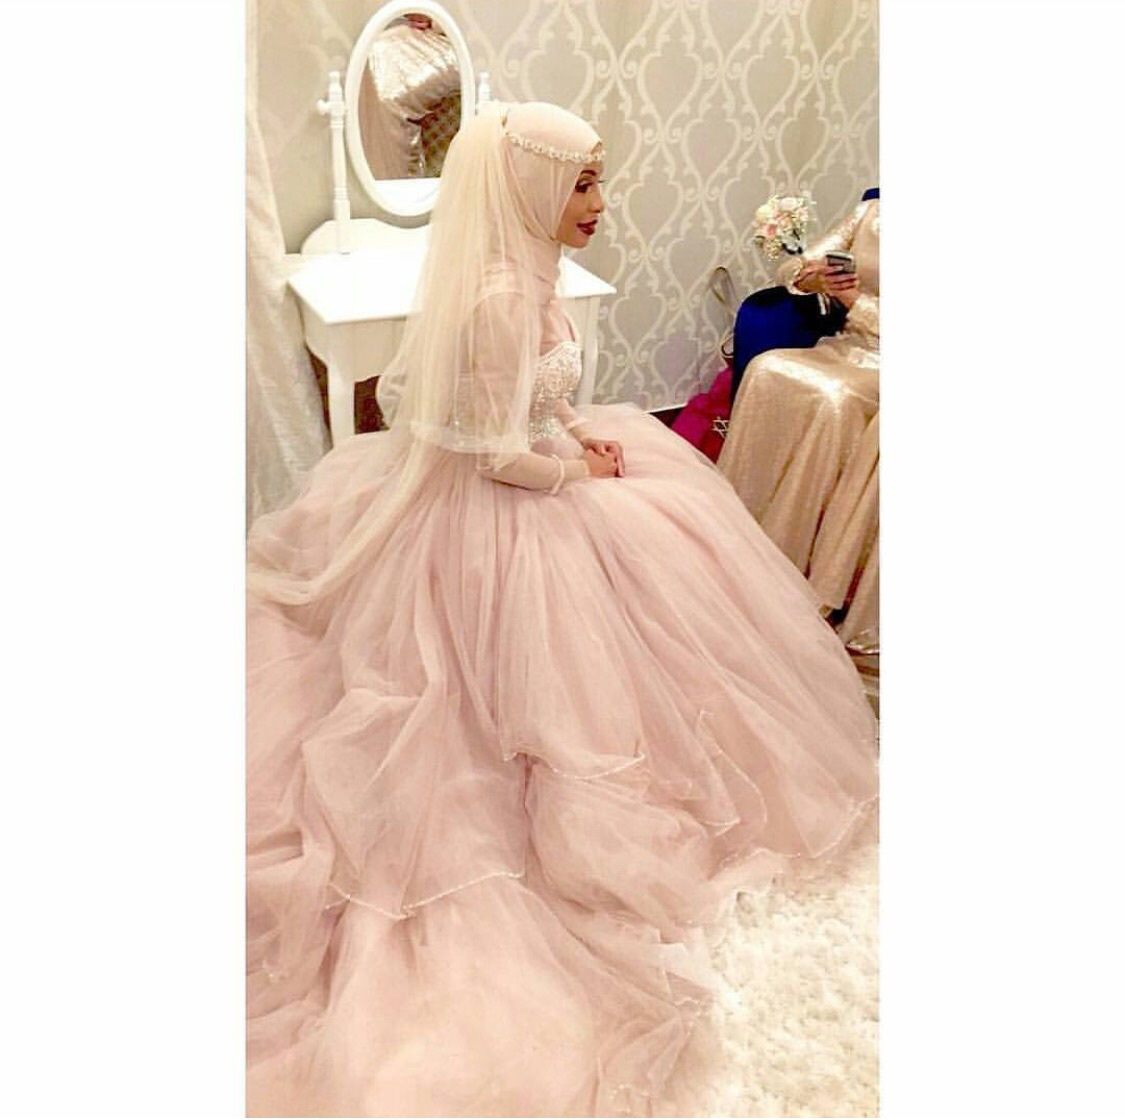 214 Images About Muslim Wedding Dresses On We Heart It See More About Wedding Dress And Hijab